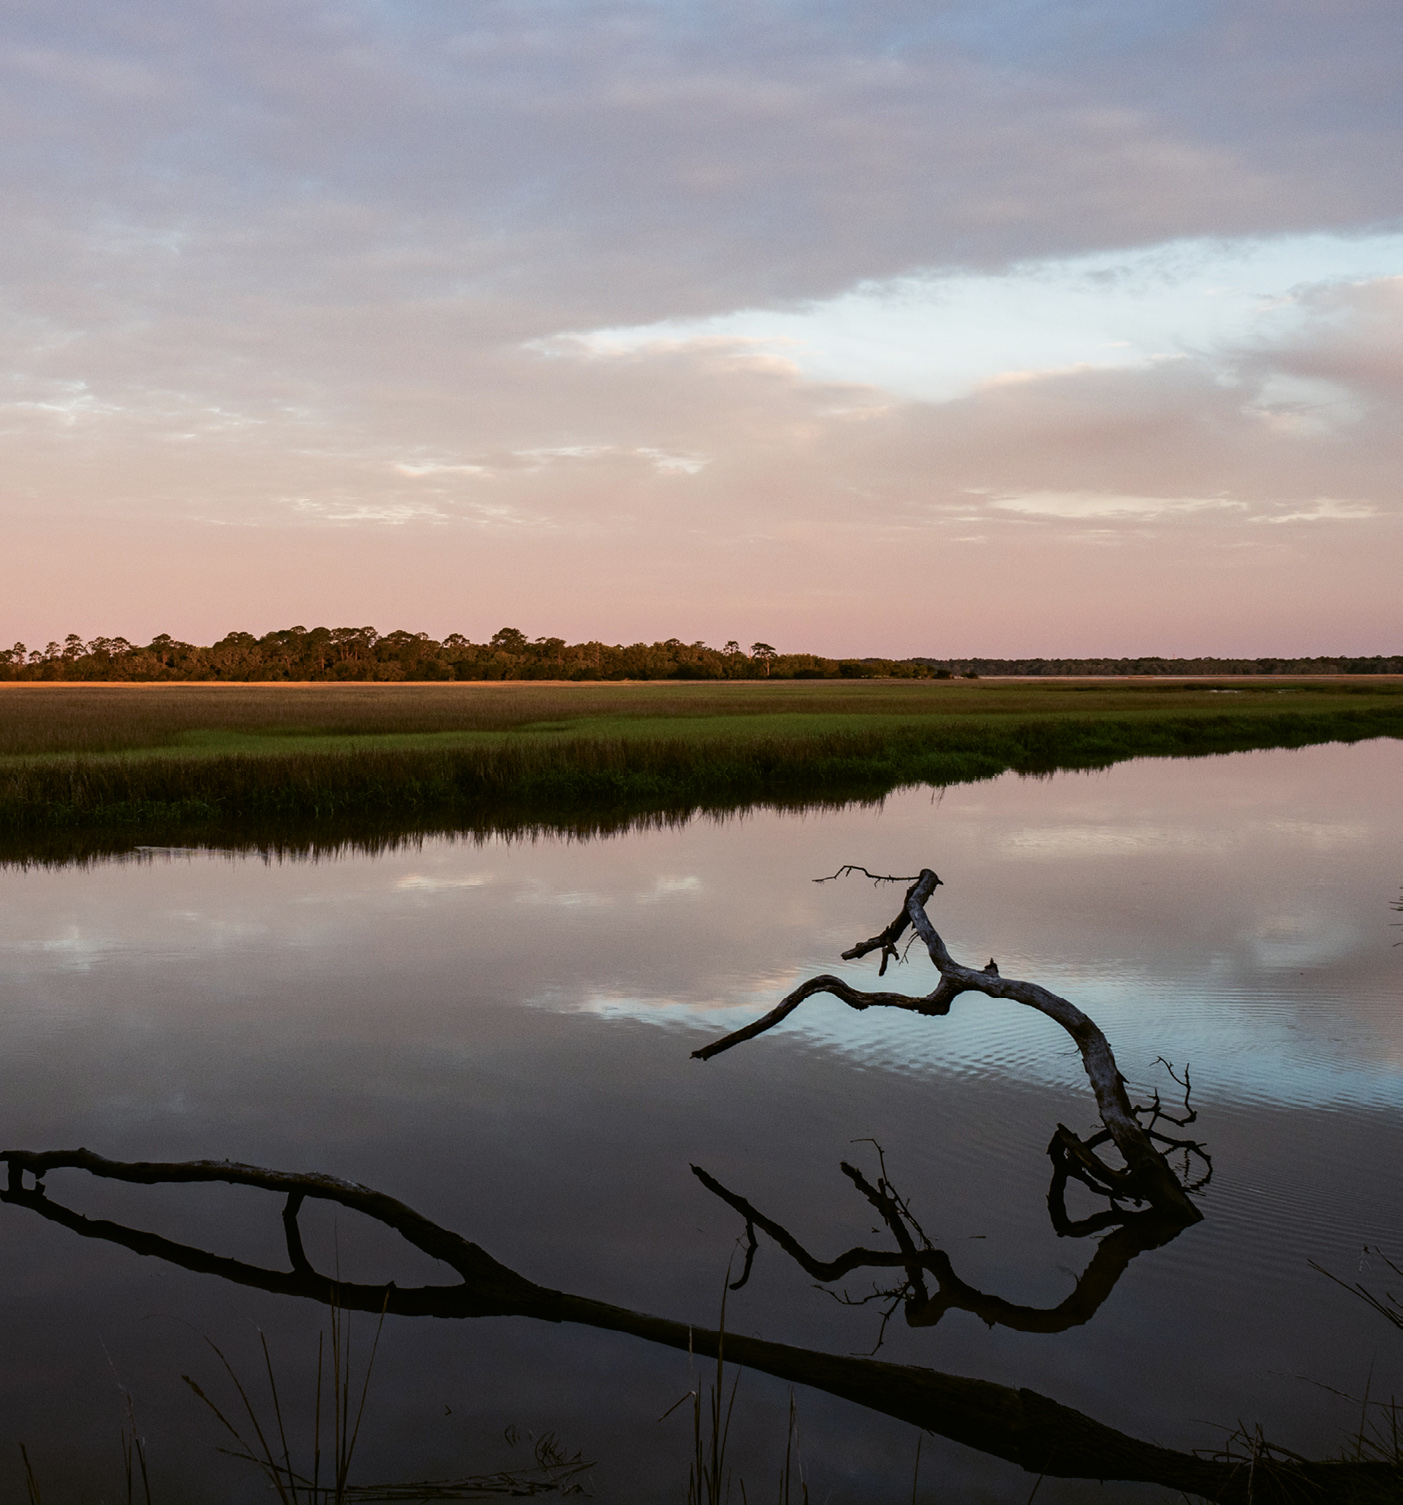 Sunset on Mosquito Creek, where tides rise and fall six to eight feet daily.